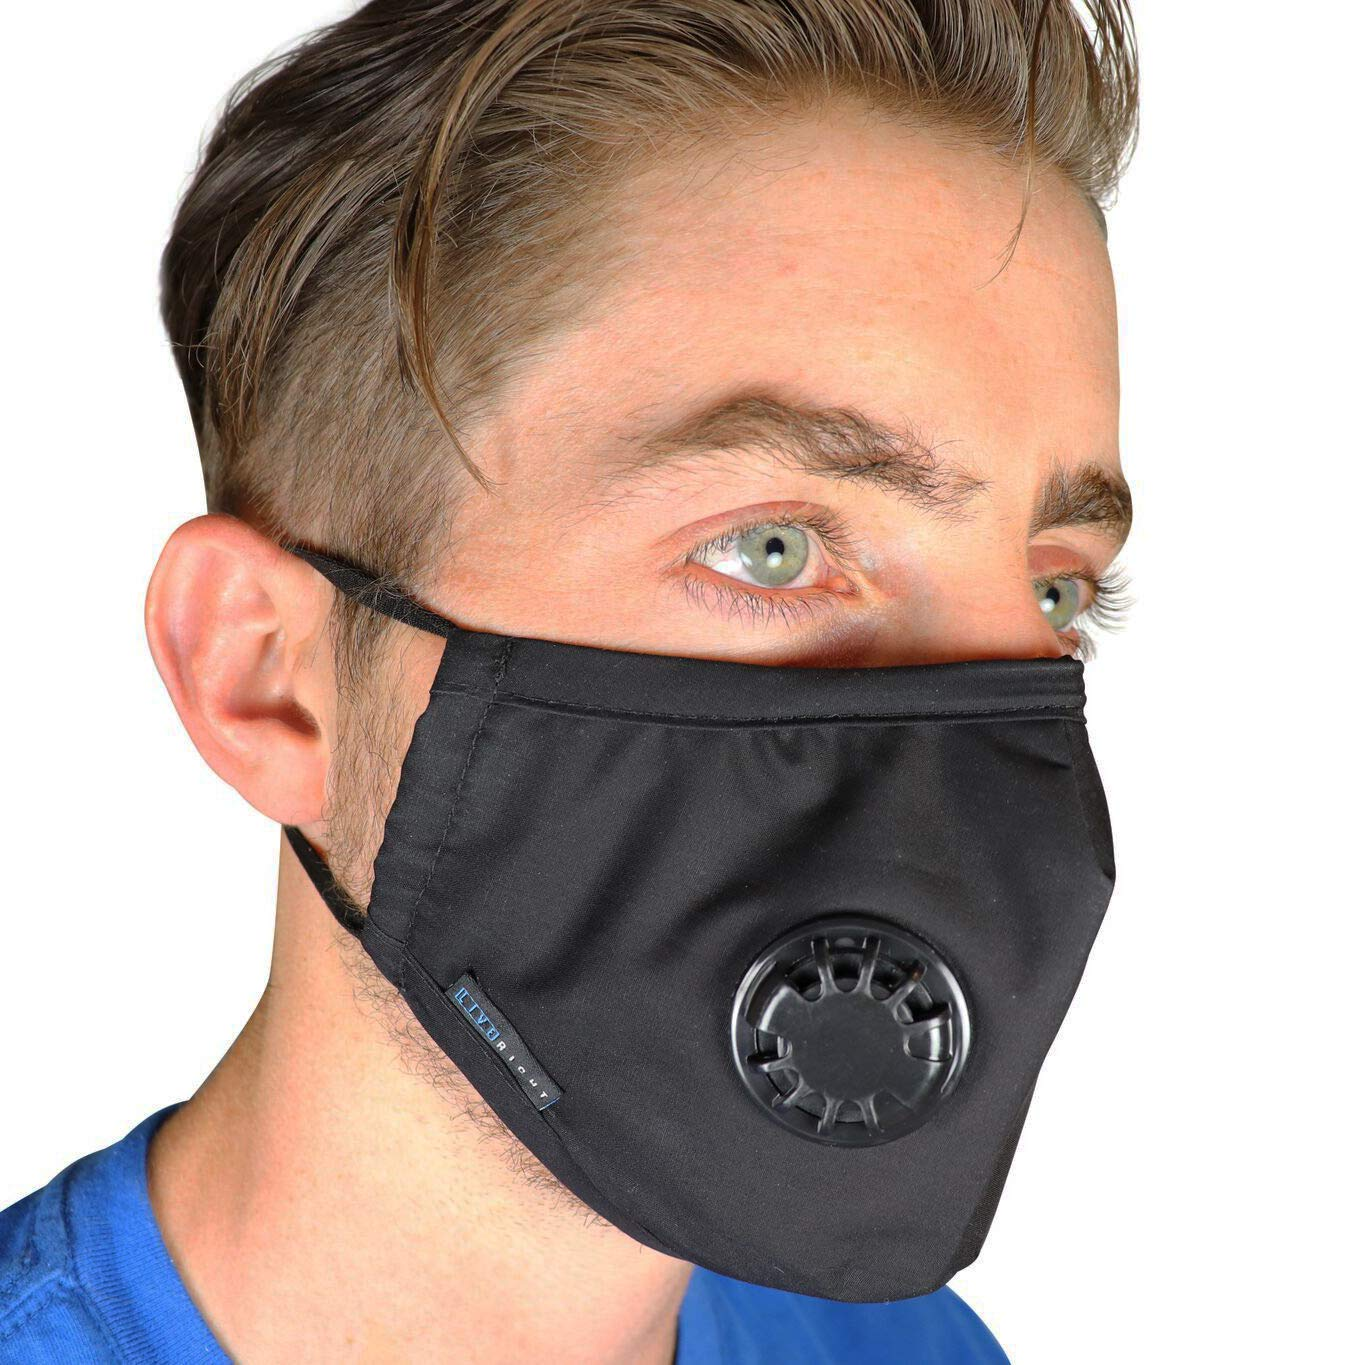 de8b53955fb Get Quotations · Full Seal Pollution Mask for Men   Women ~ Reusable Cotton  Air Filter Mask With Adjustable